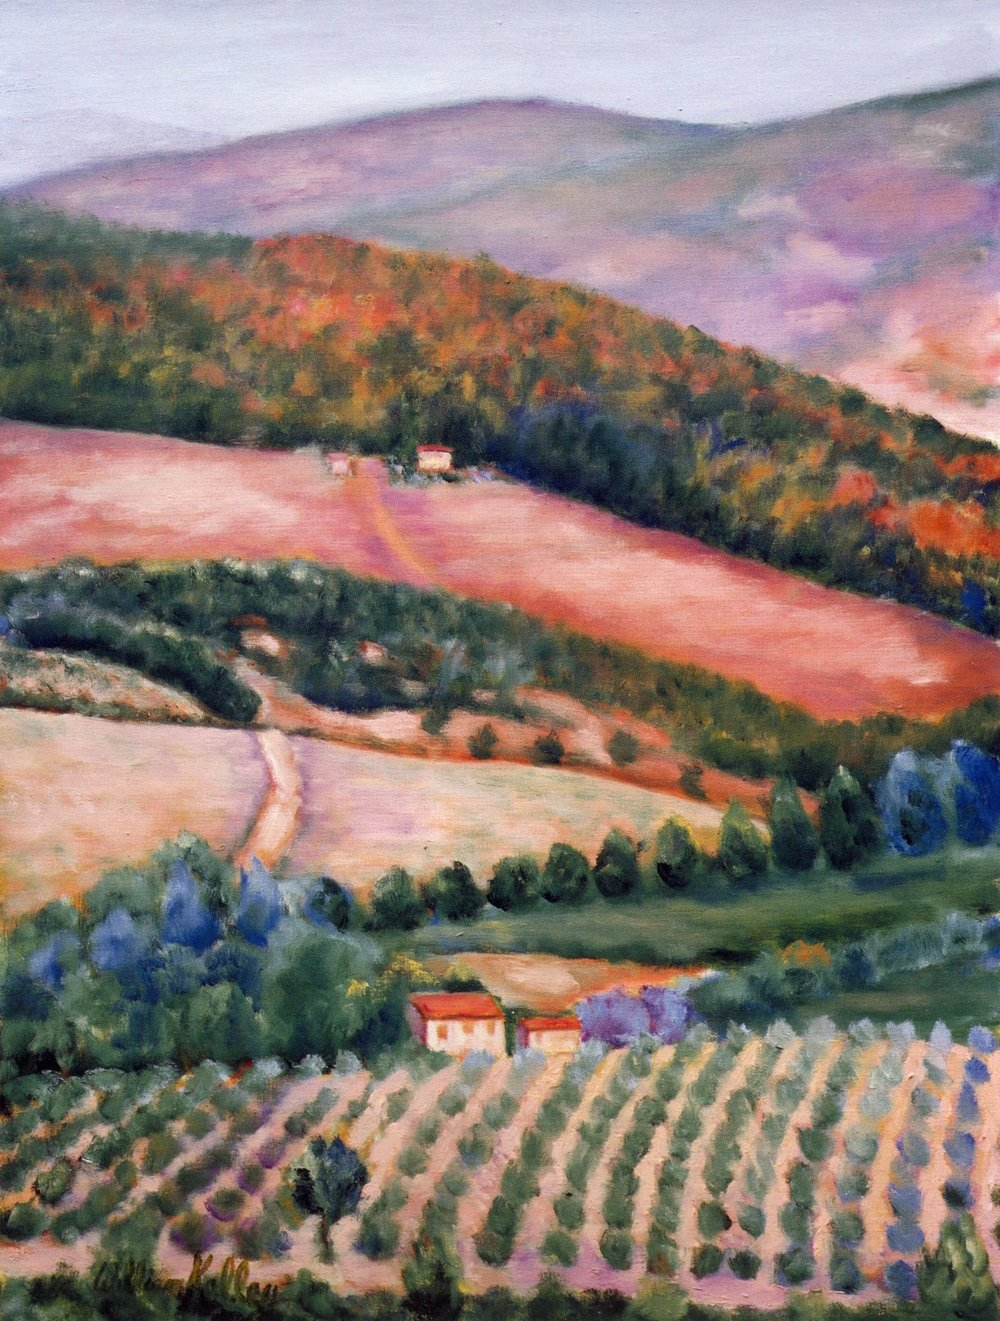 La Bella Vista, Chianti   Oil on canvas, 36'' x 48'', 2004